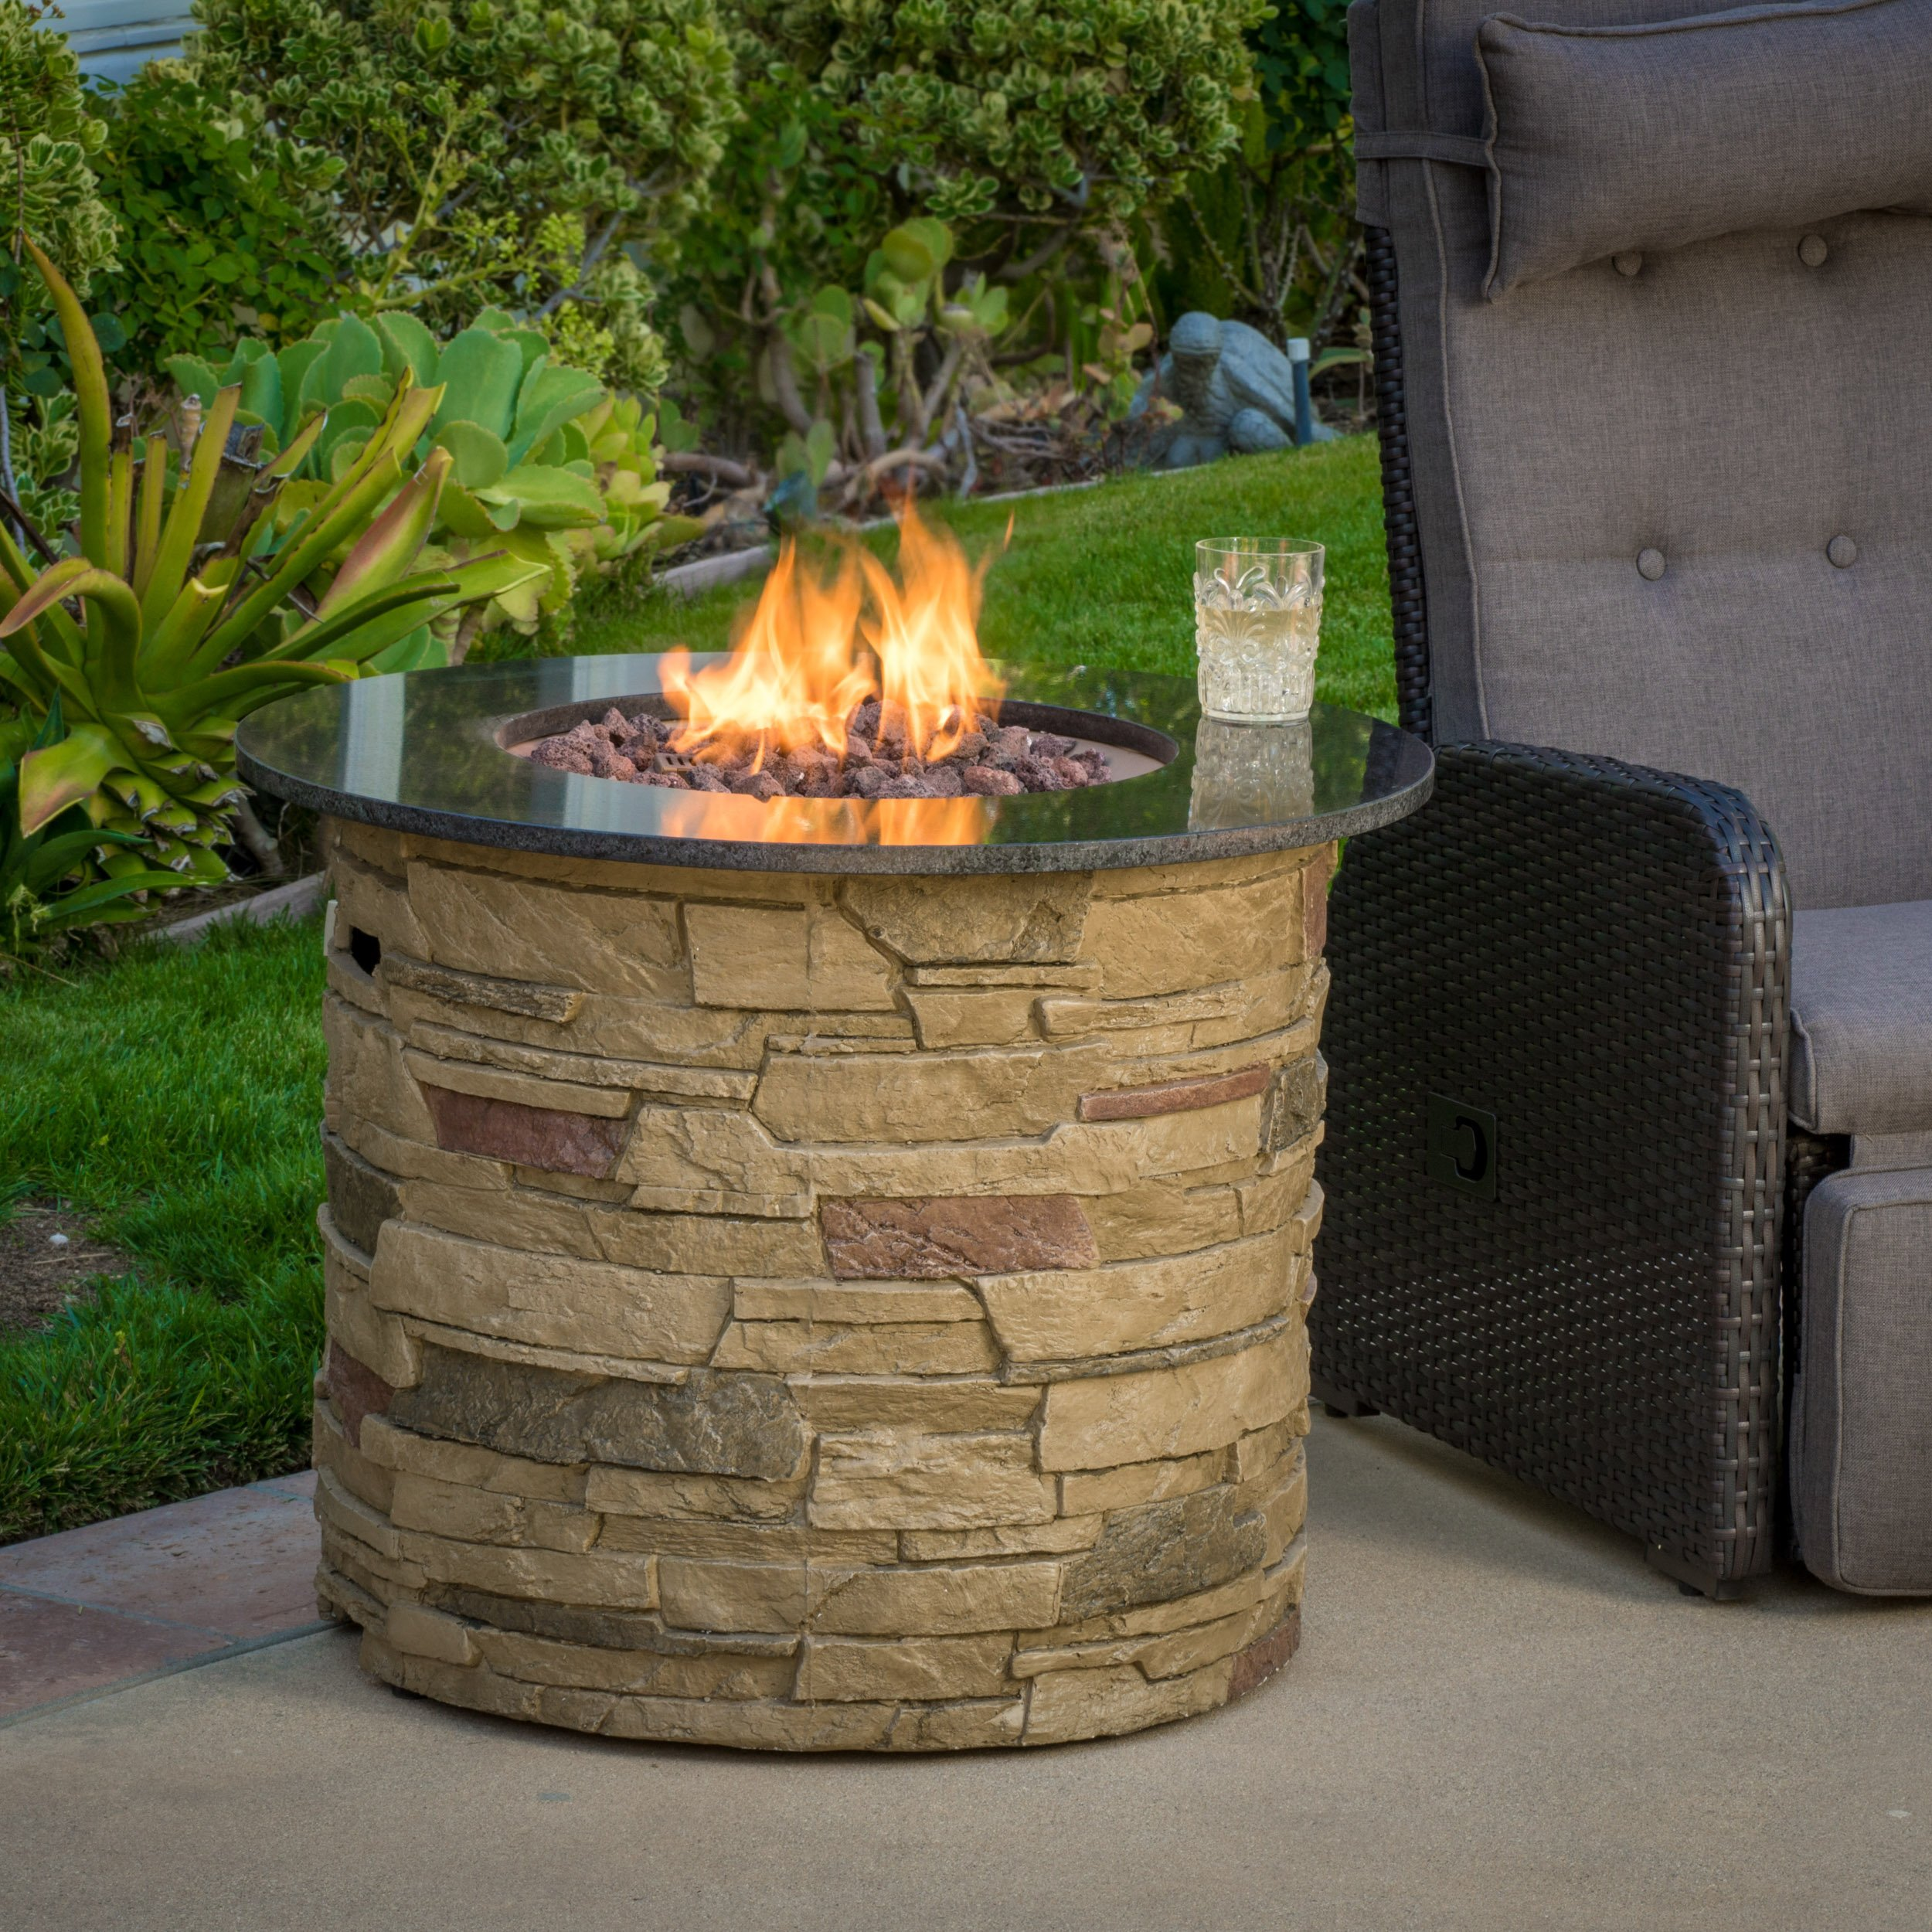 Christopher Knight Home 296658 Rogers Round Stone Fire Pit Table, 32'' Propane Gas Patio Heater with Lava Rocks